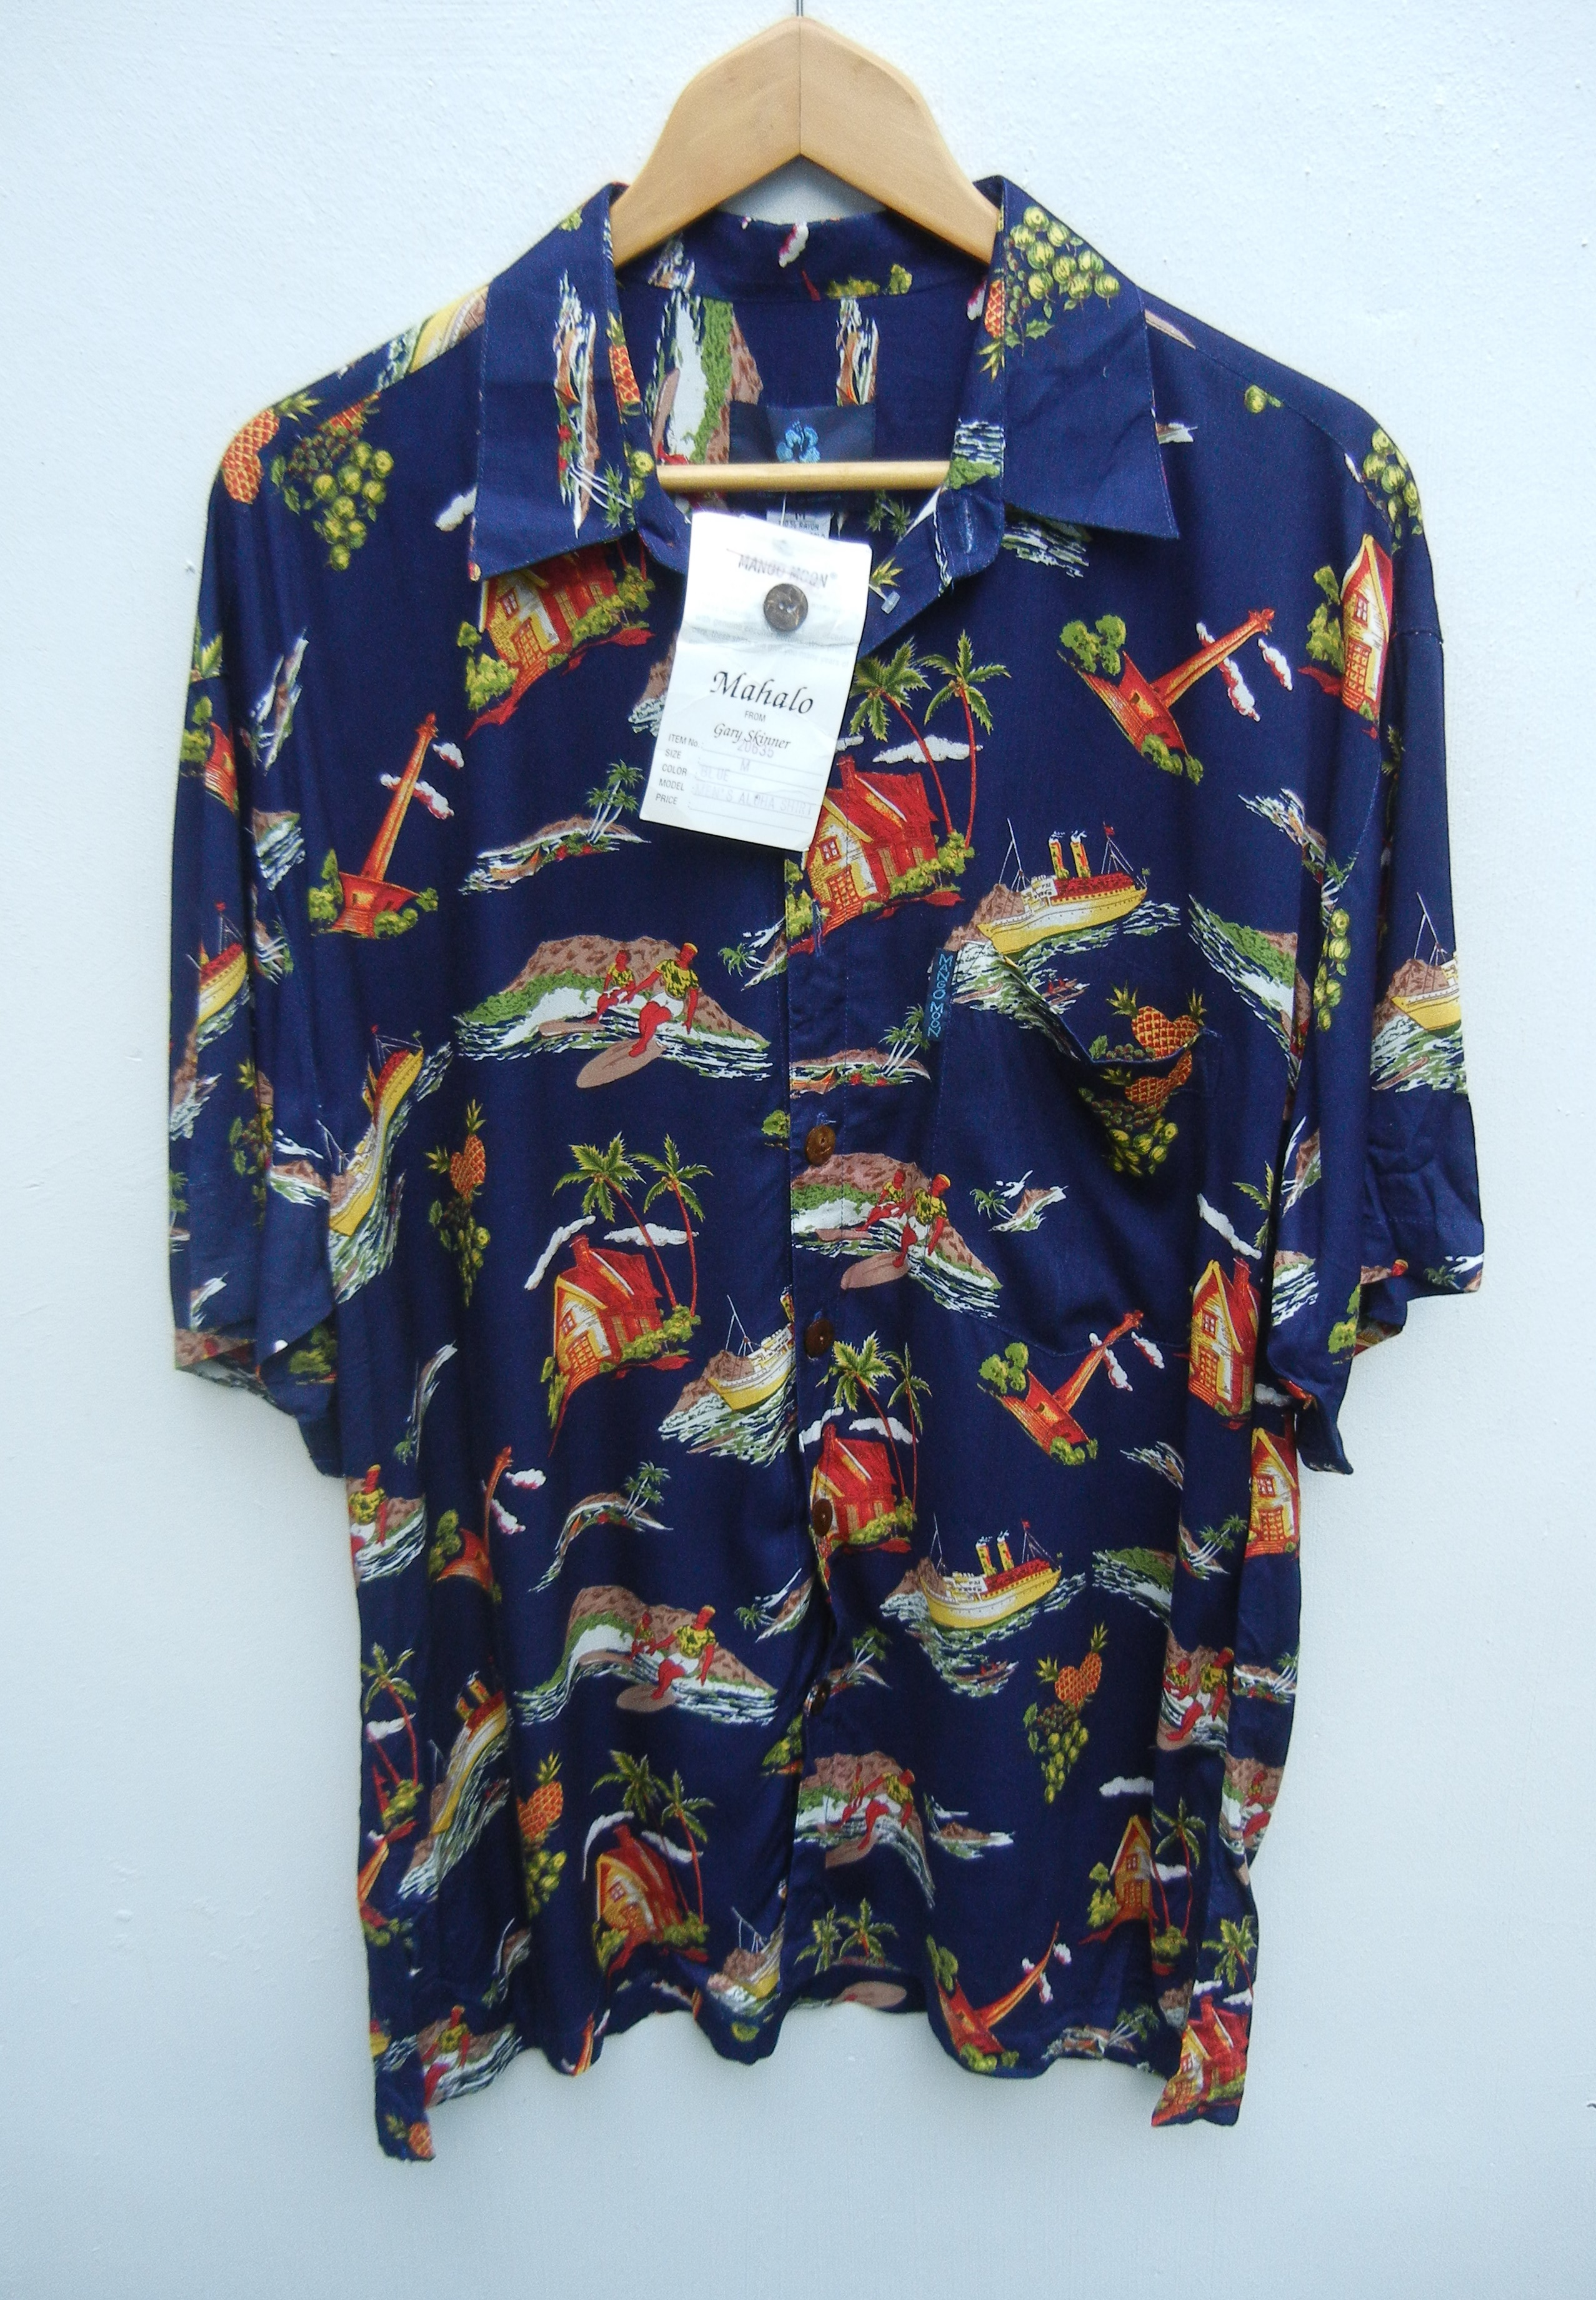 Japanese Brand 100 Rayon Mango Moon Hawaiian Shirt Aloha Beach